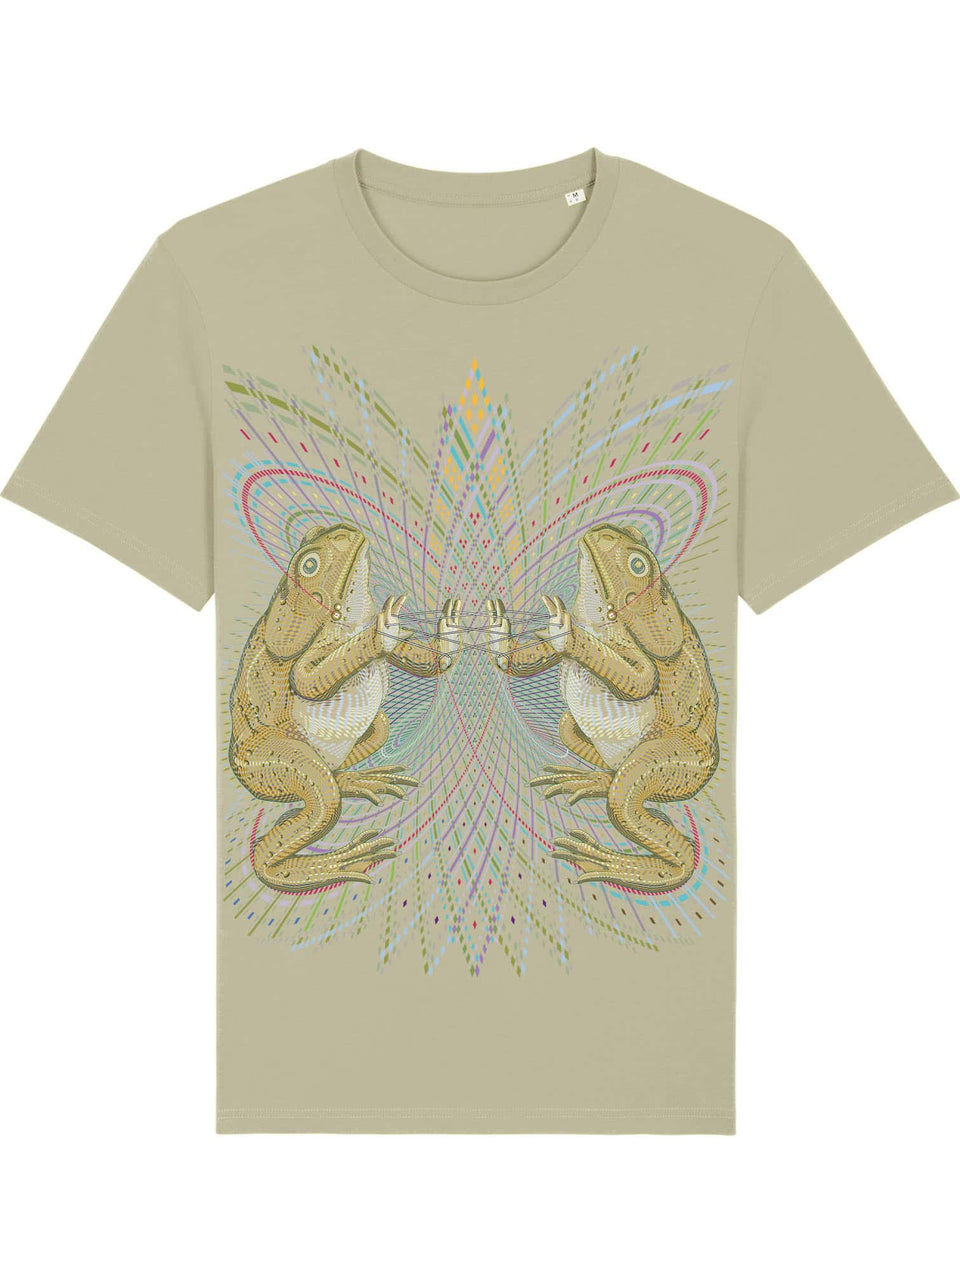 Bufo Alvarius Made To Order Men T-Shirt - Sage